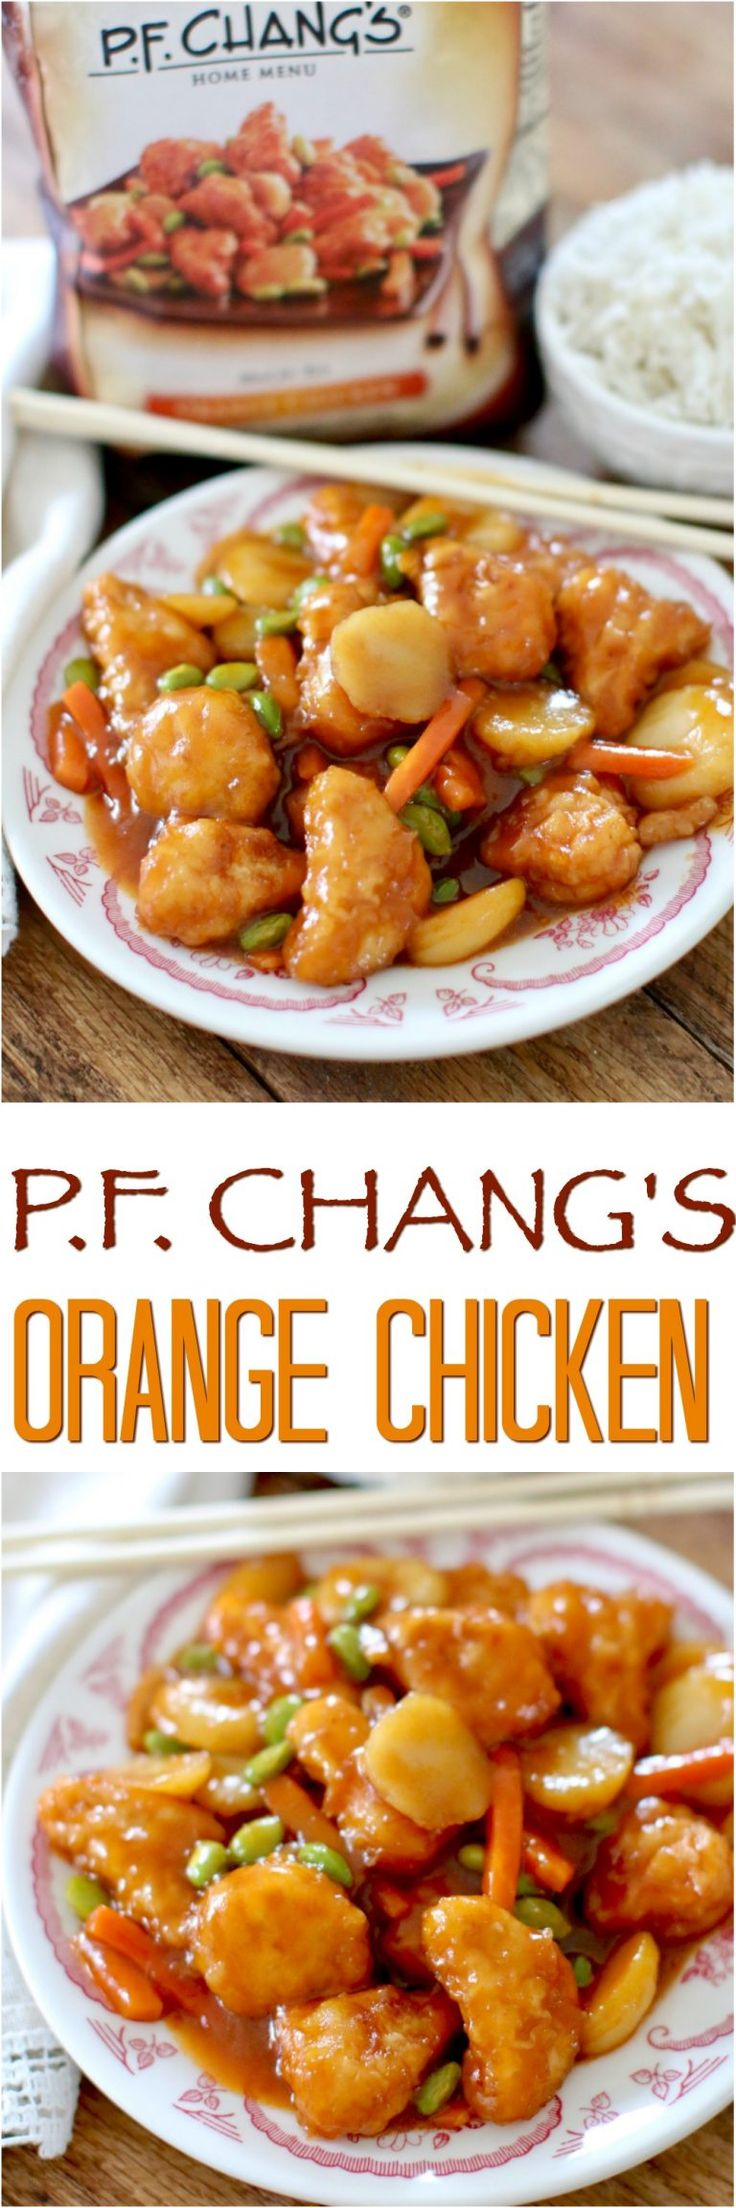 P.F. Chang's Home Menu Orange Chicken featured at The Country Cook